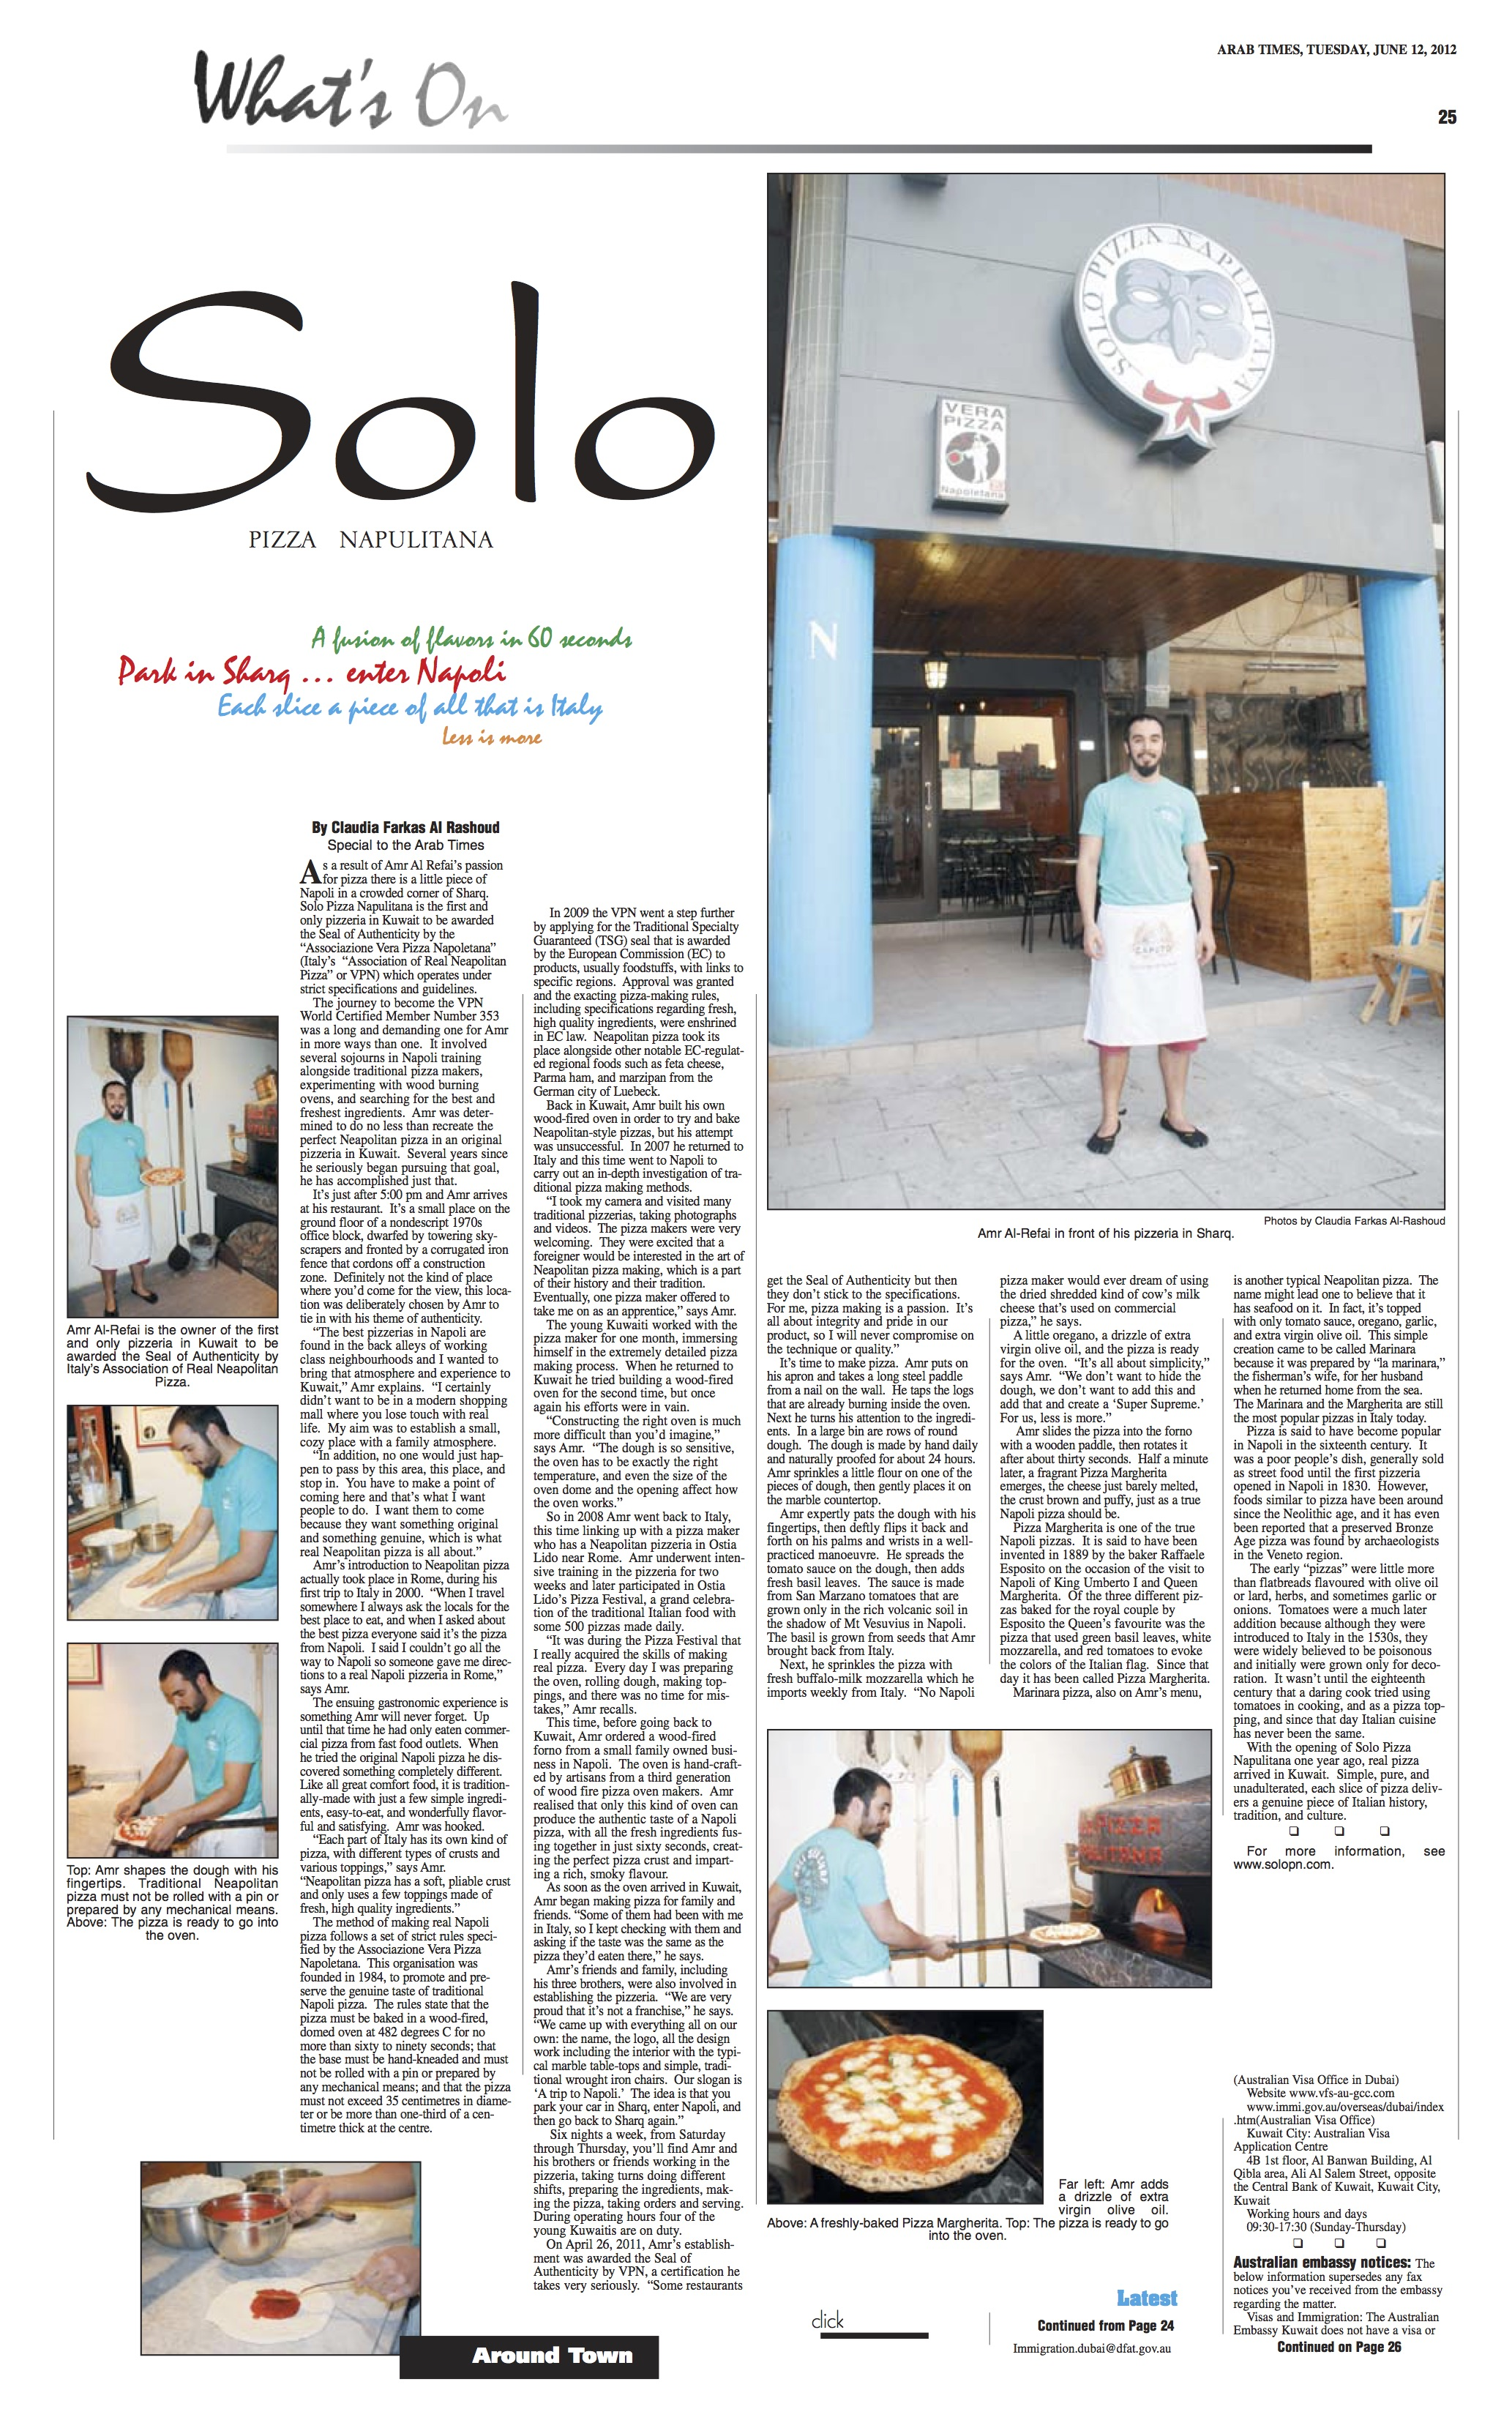 arab times - what's on (12 Jun 2012)